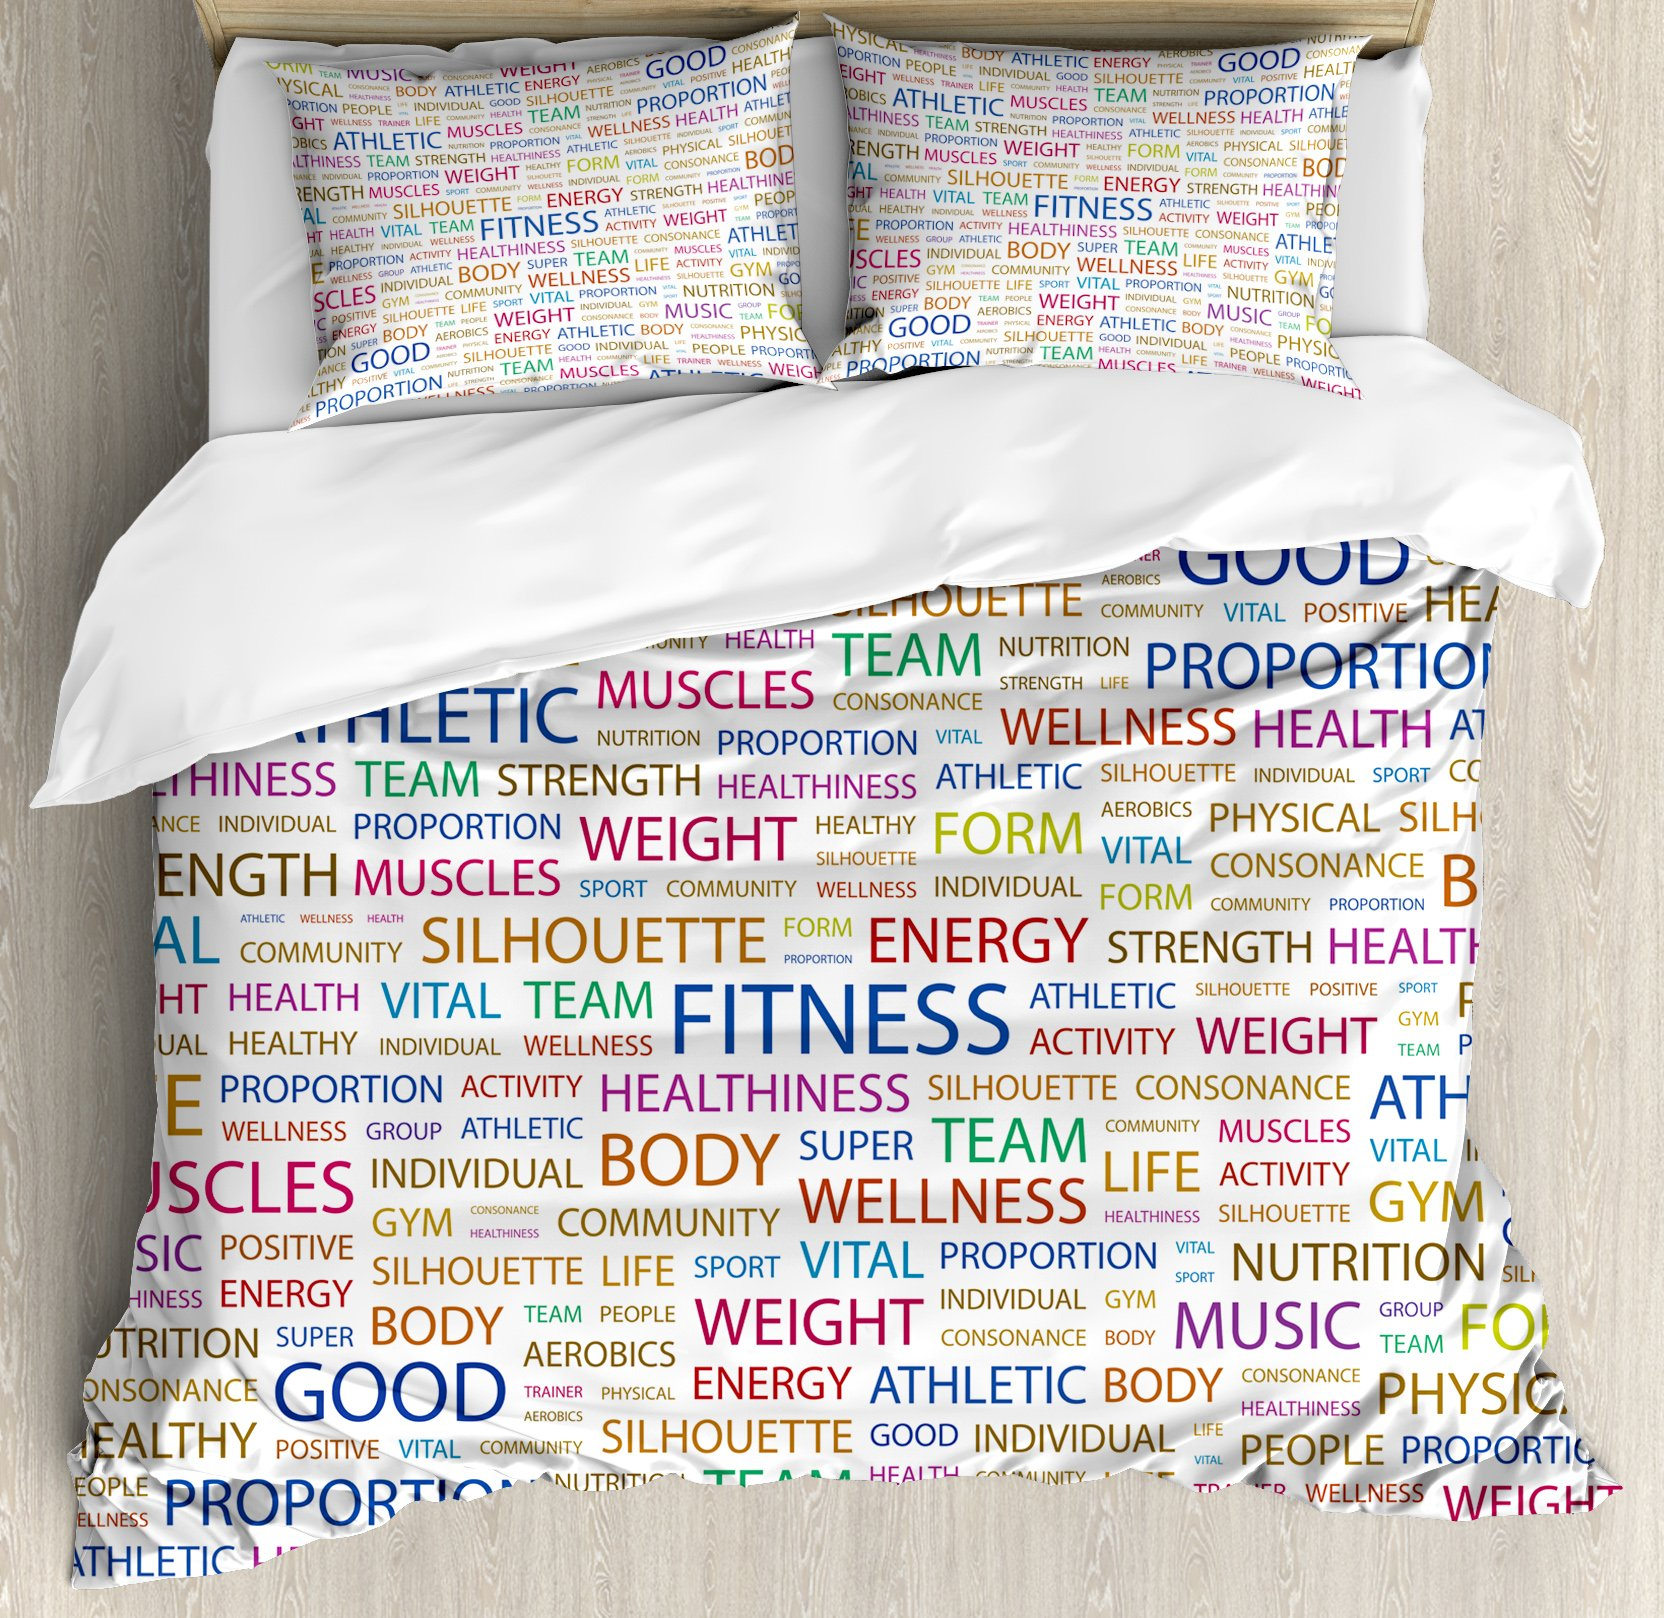 Fitness Queen Size Duvet Cover Set by Ambesonne, Gymnastics Psyhical Activity Lifestyle Concept Words Salubrity Wellness Health, Decorative 3 Piece Bedding Set with 2 Pillow Shams, Multicolor